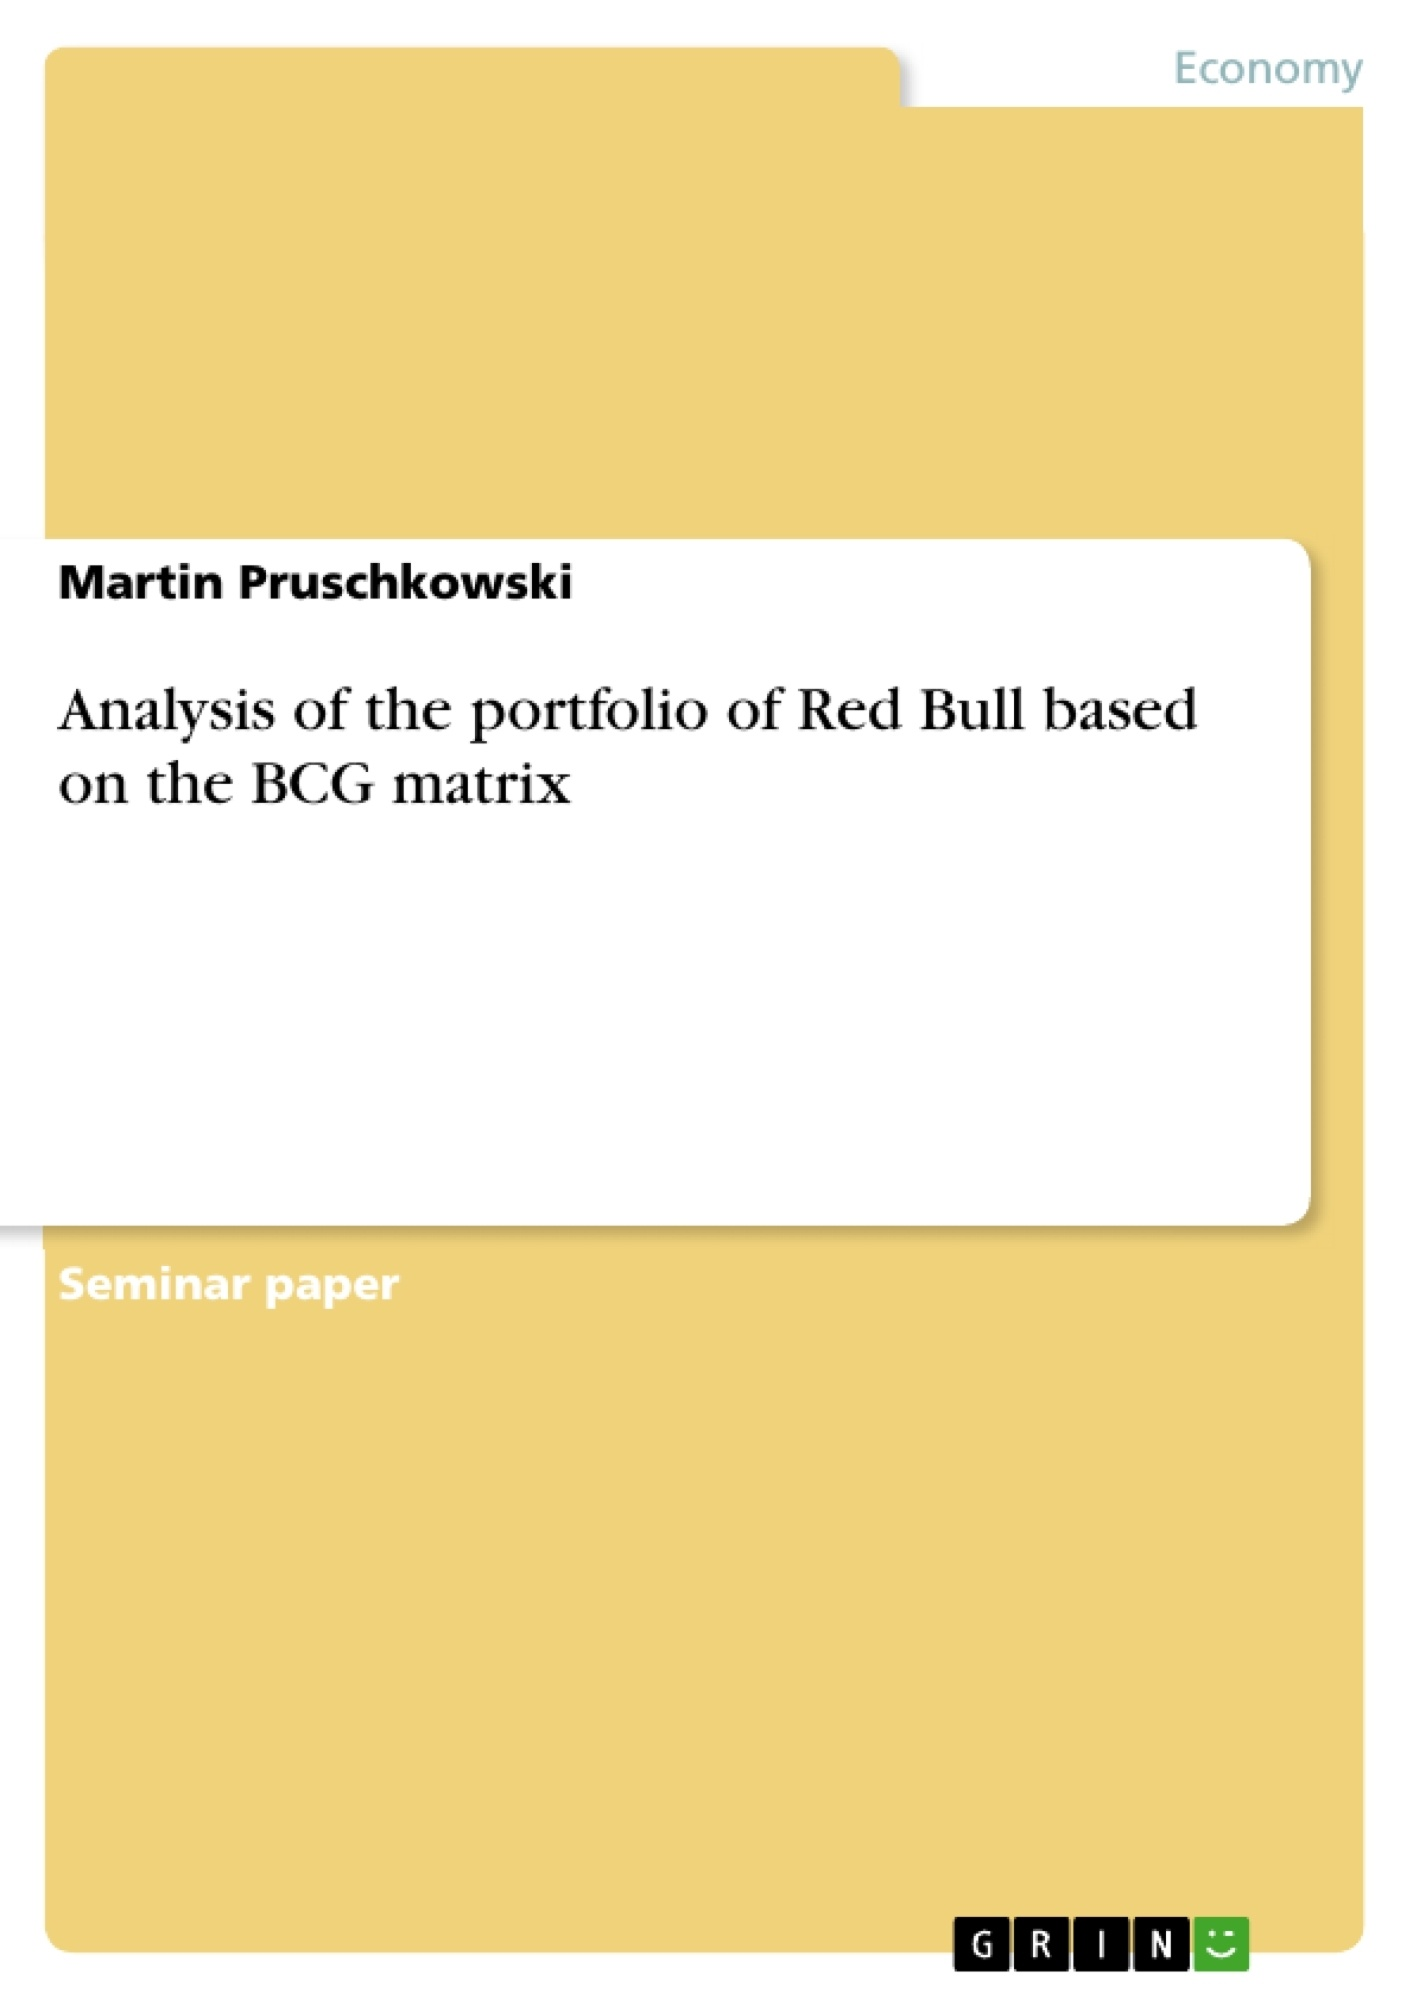 Title: Analysis of the portfolio of Red Bull based on the BCG matrix